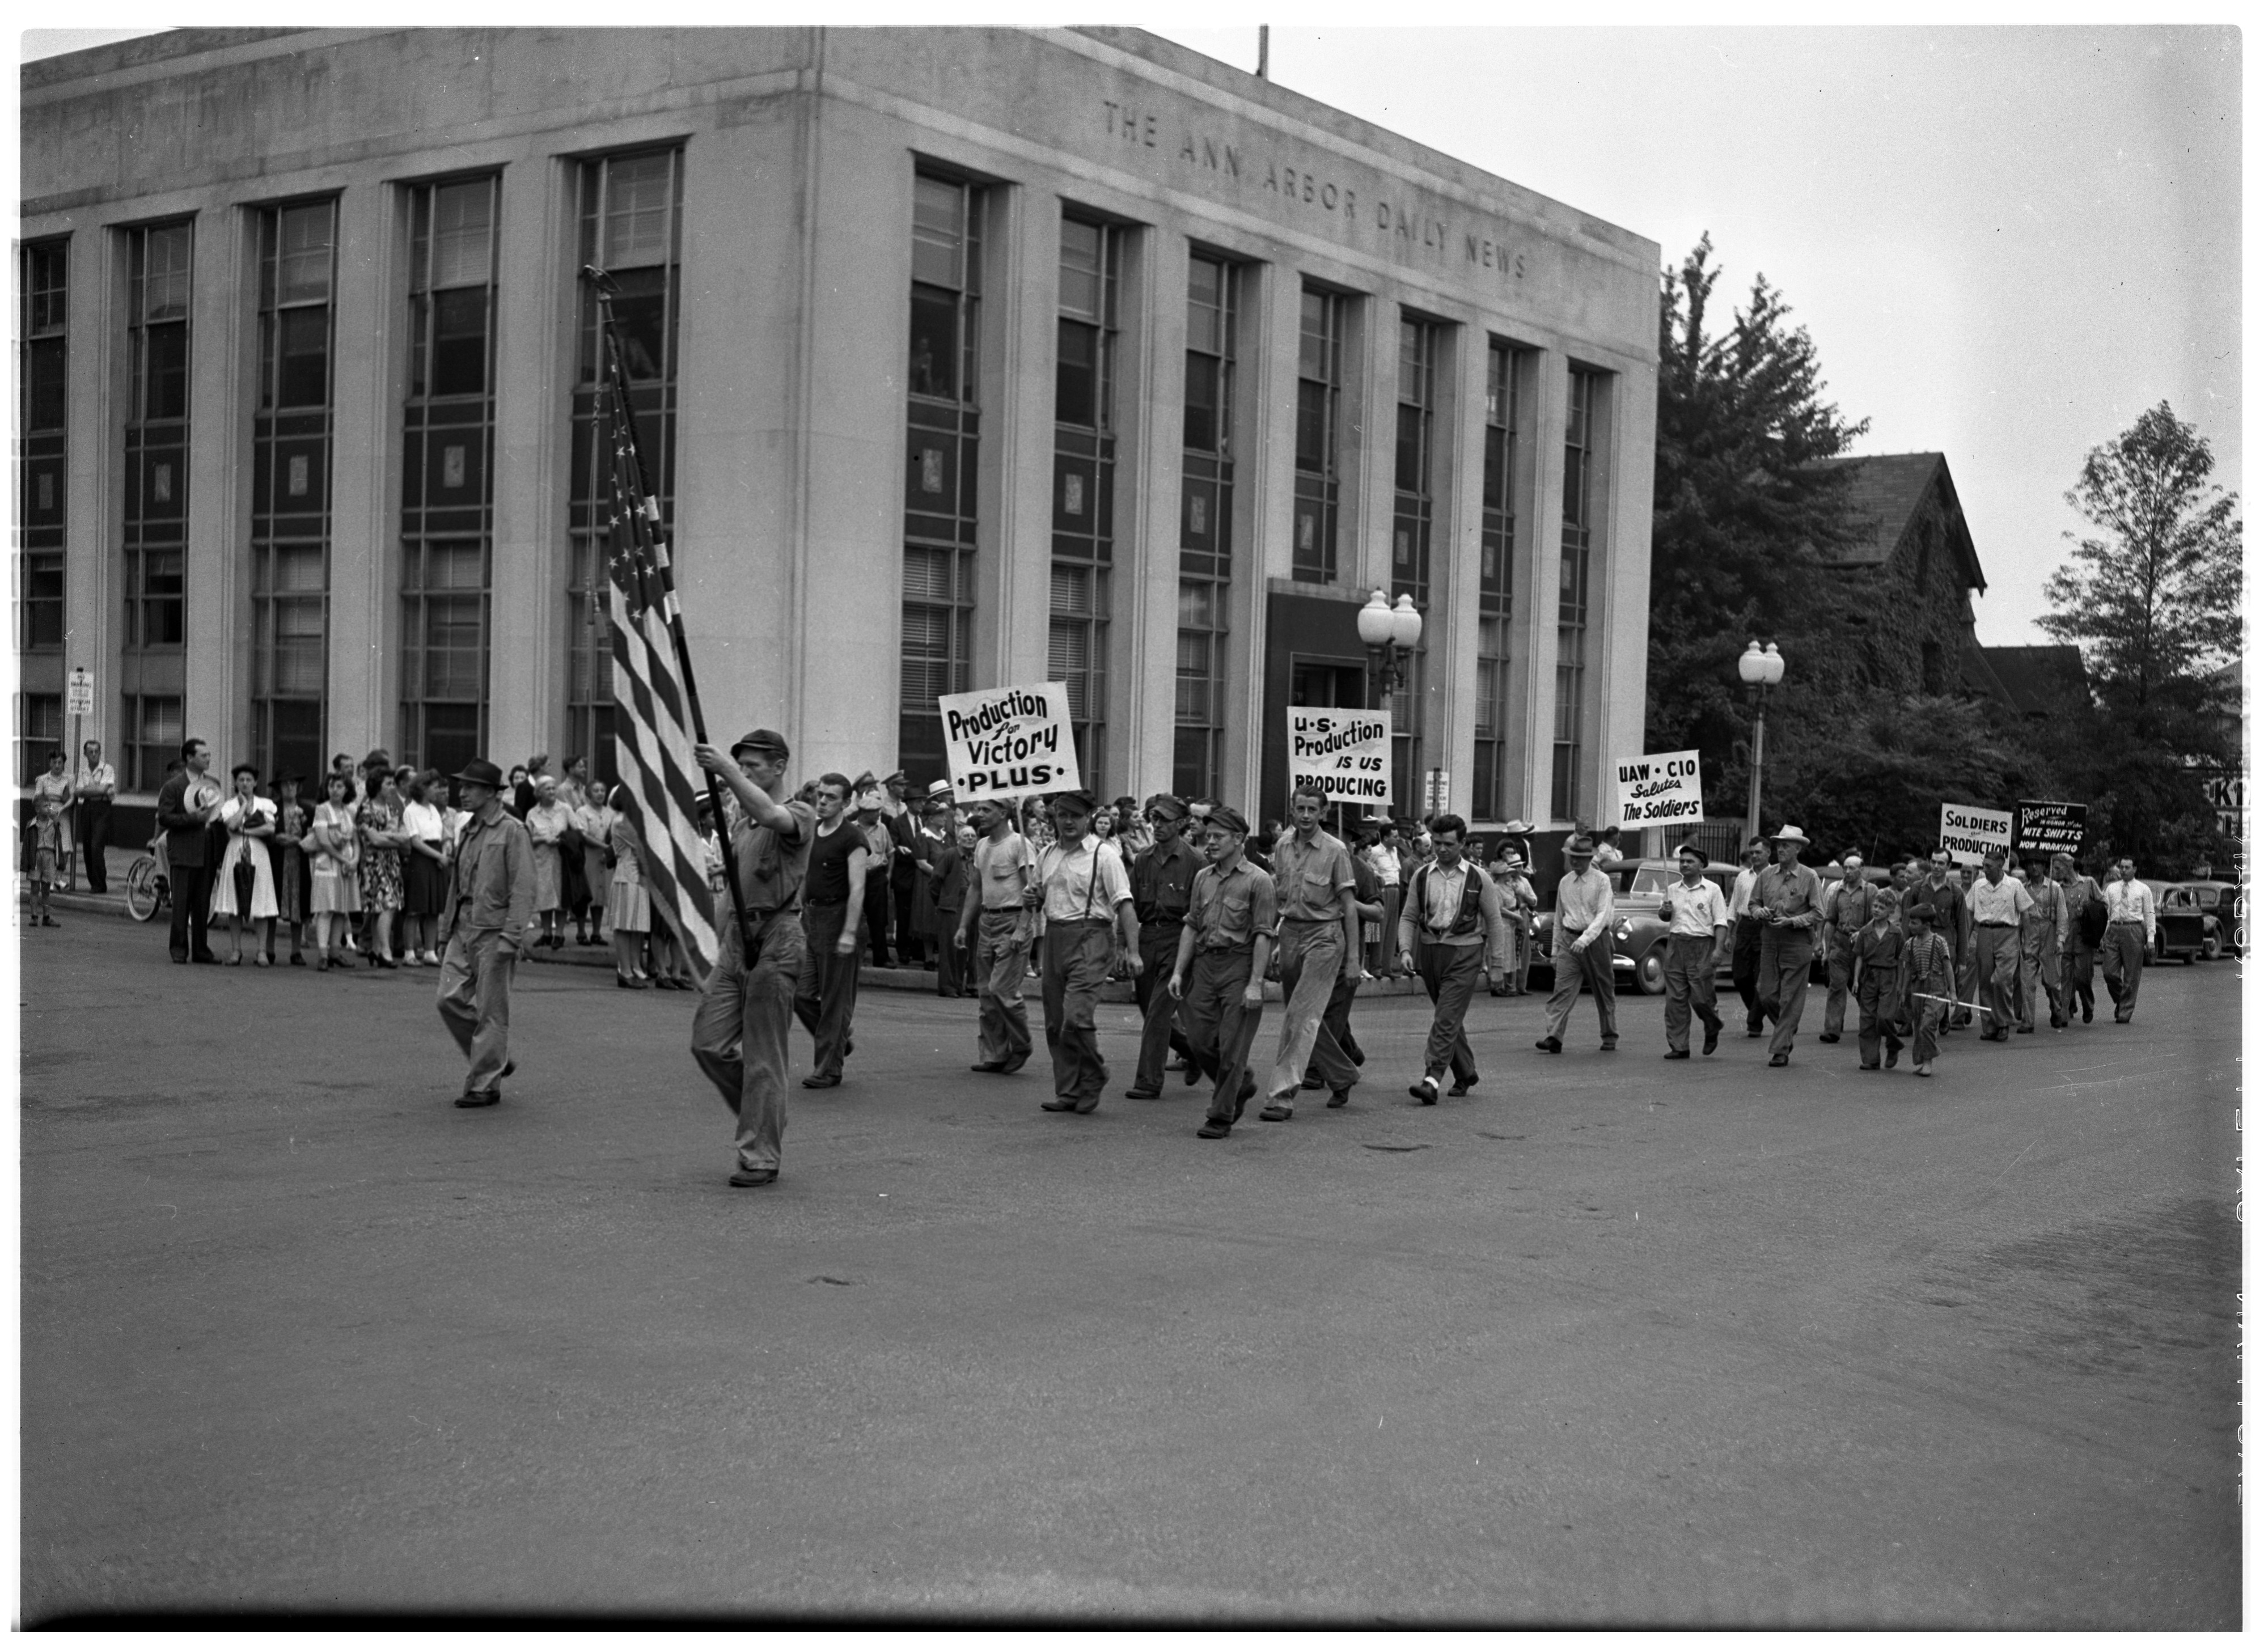 Local plant workers parade past Ann Arbor News building in the U.S. Army Honors Labor, Industry & Agriculture: Parade, August 1943 image